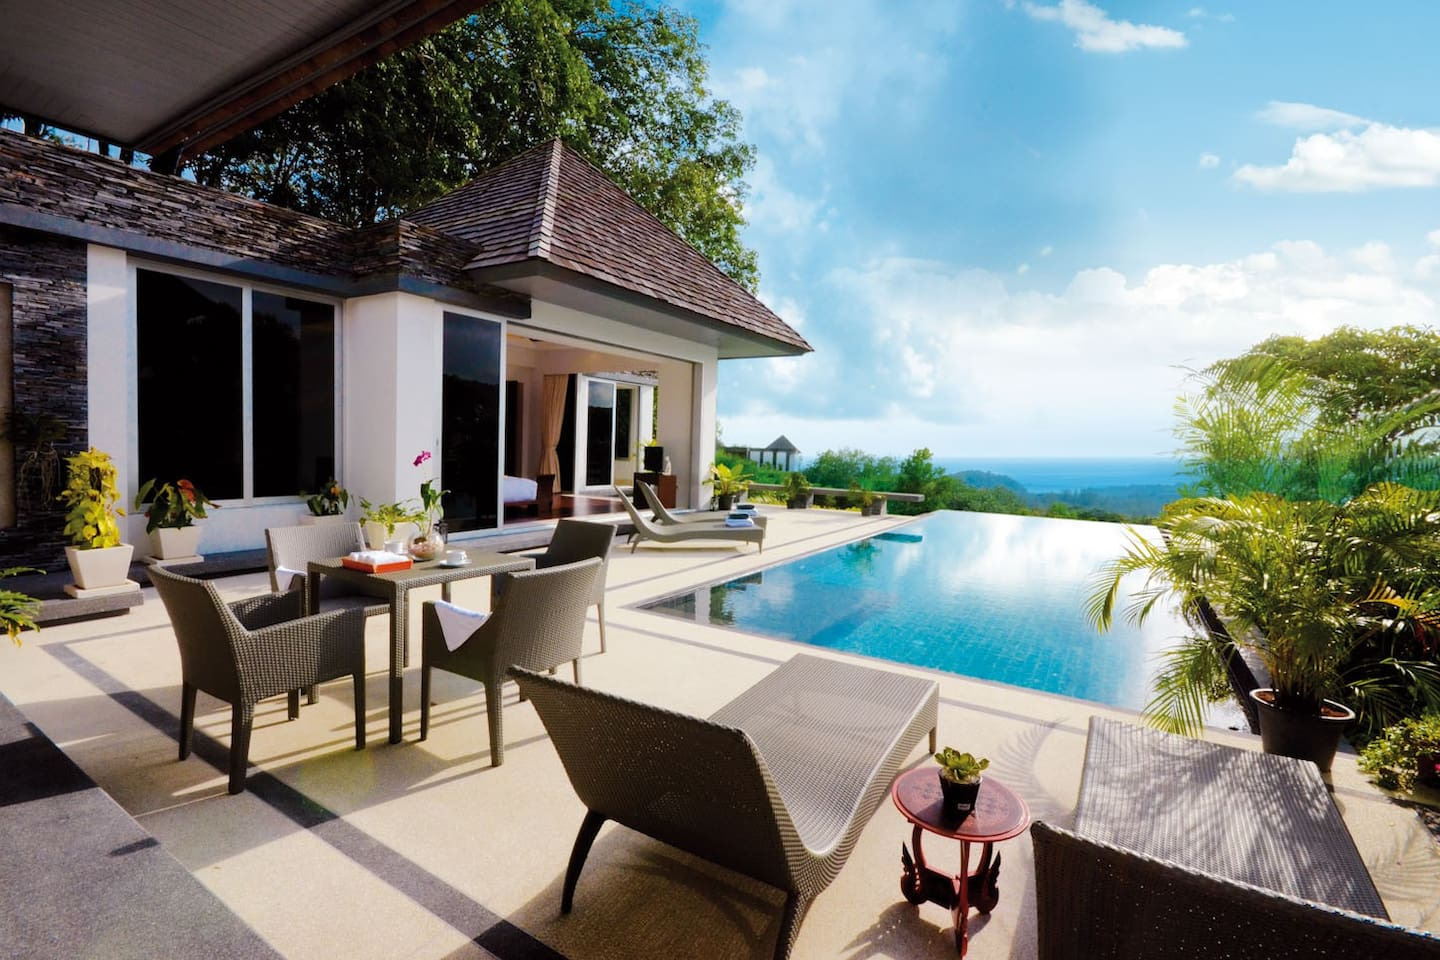 Open pool area with a pack of furniture